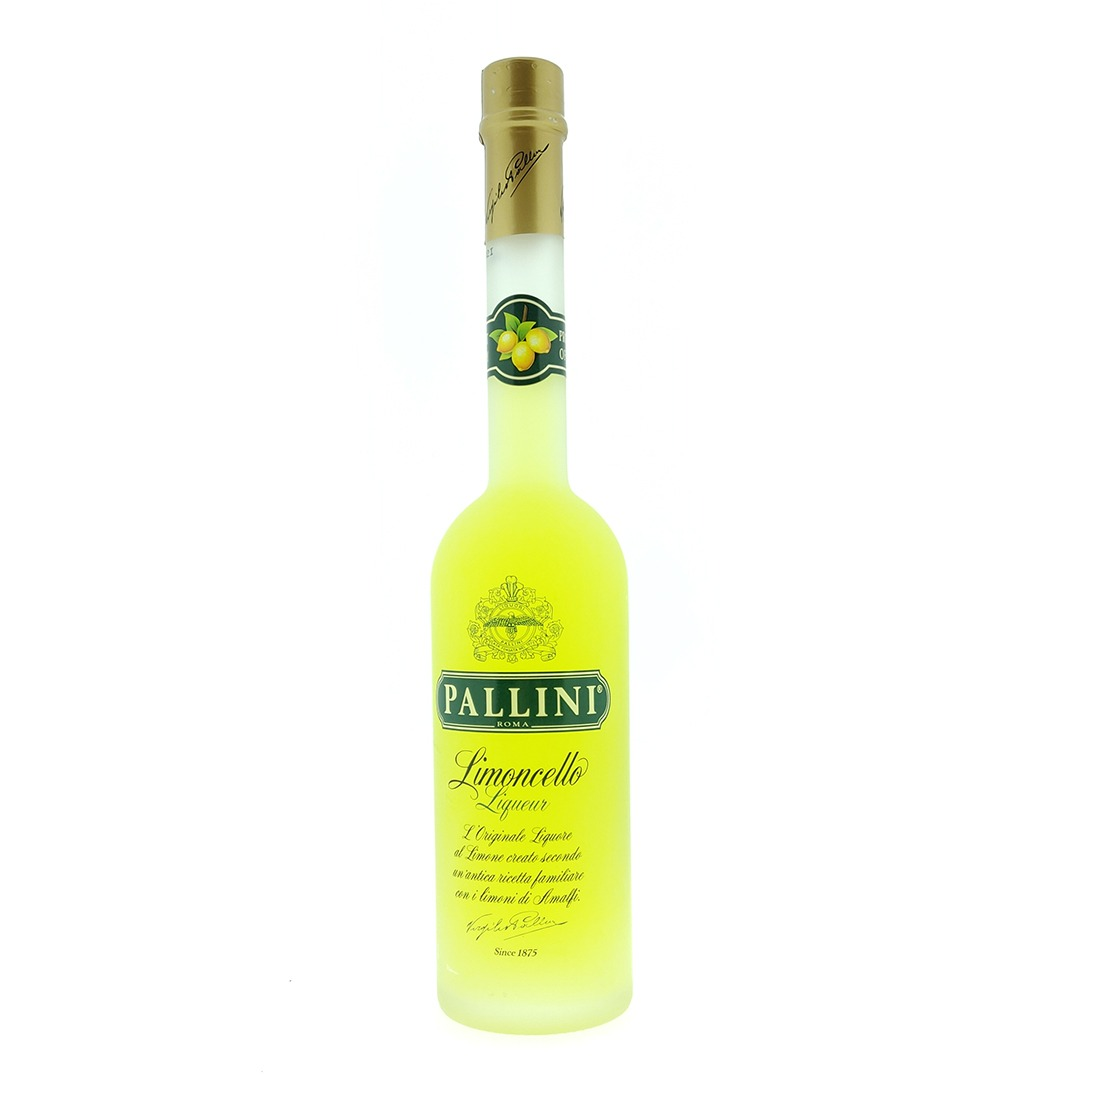 Large Horz 360 3 limoncello